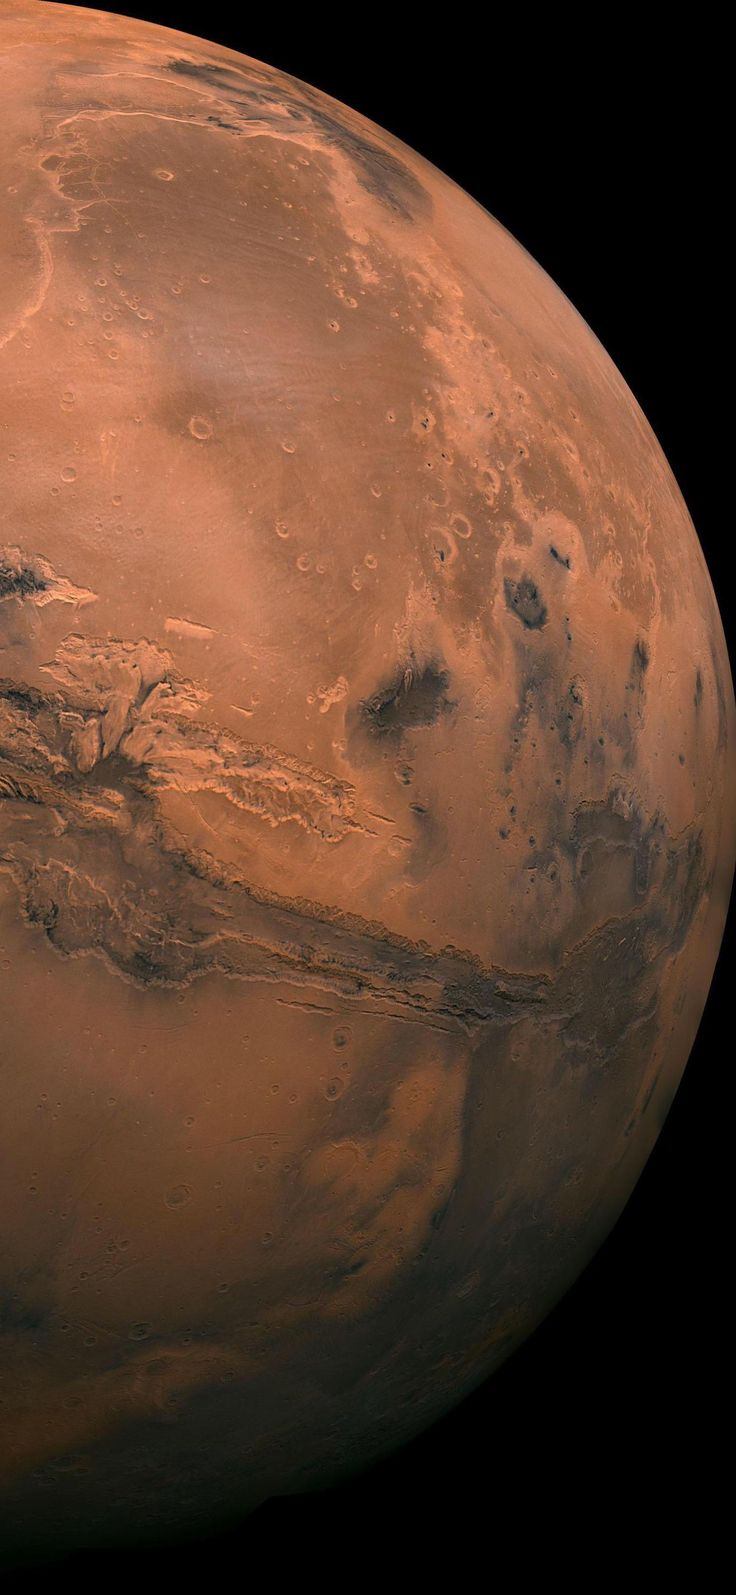 The most detailed photo of Mars | Cellphone wallpaper ...